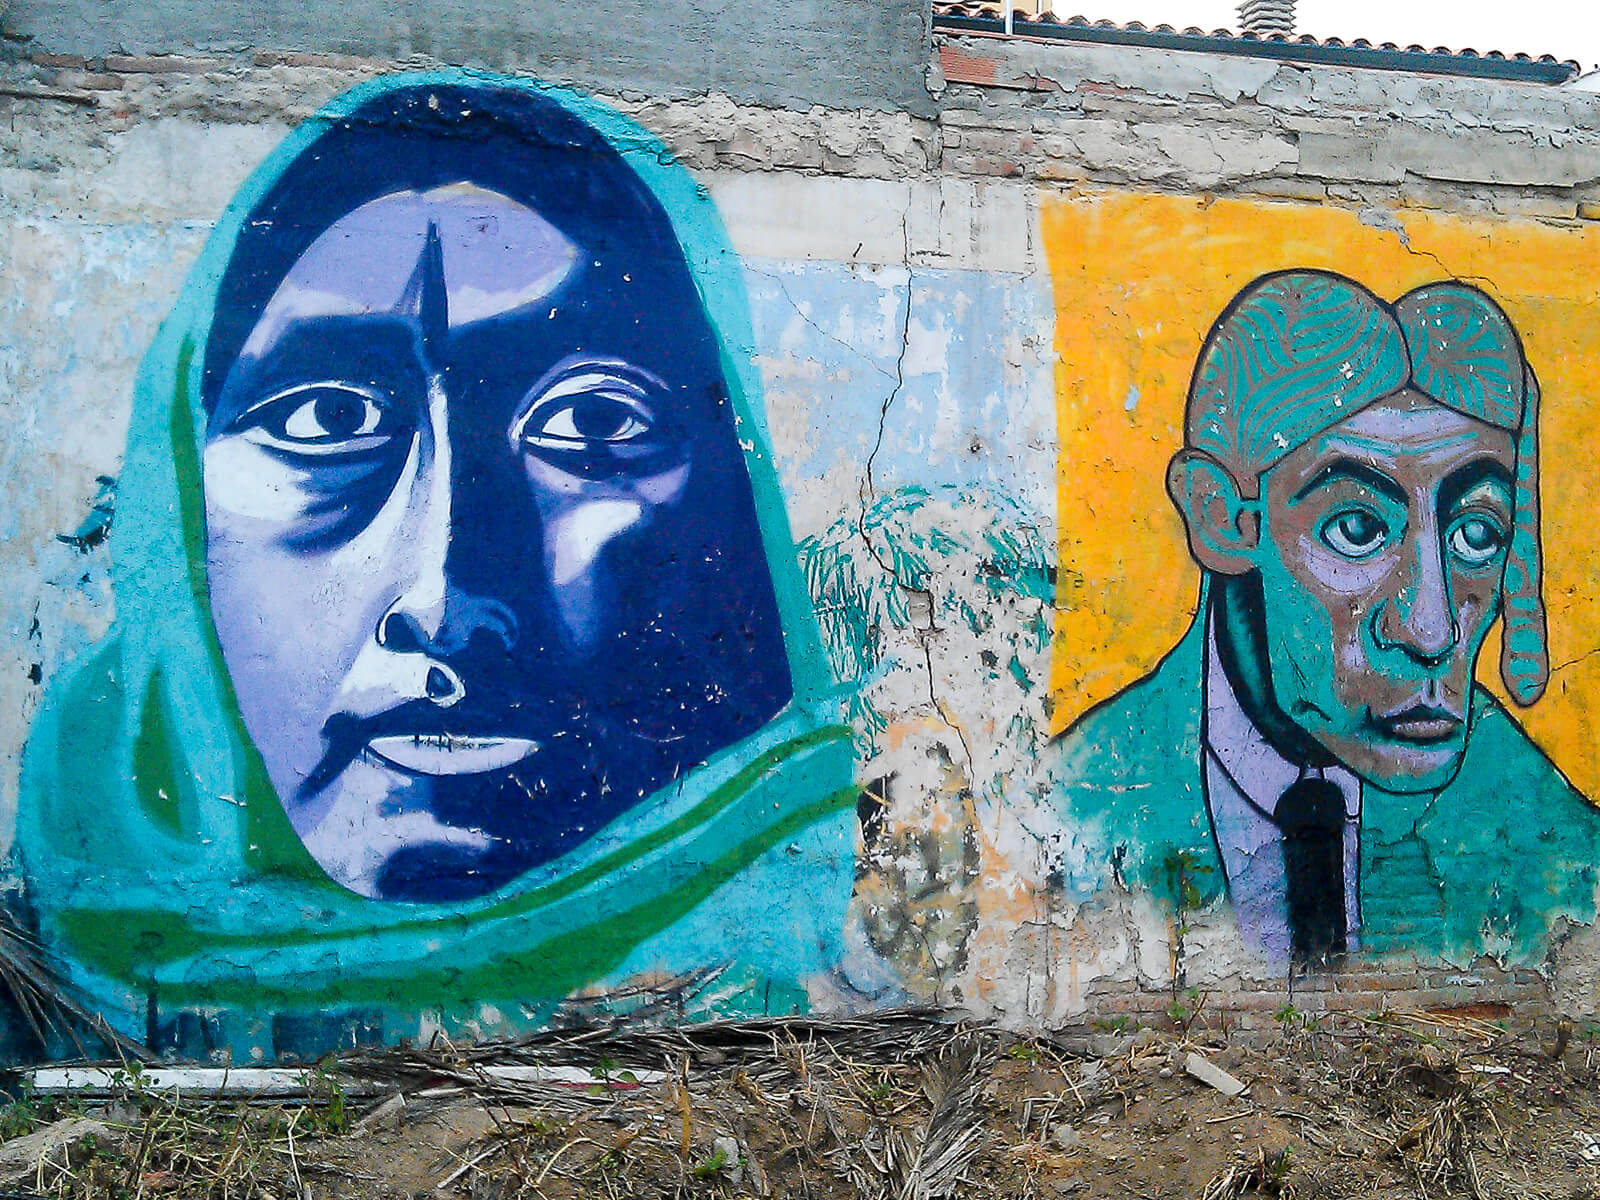 Barcelona Street Photography, blue face woman, green headscarf, street art mural